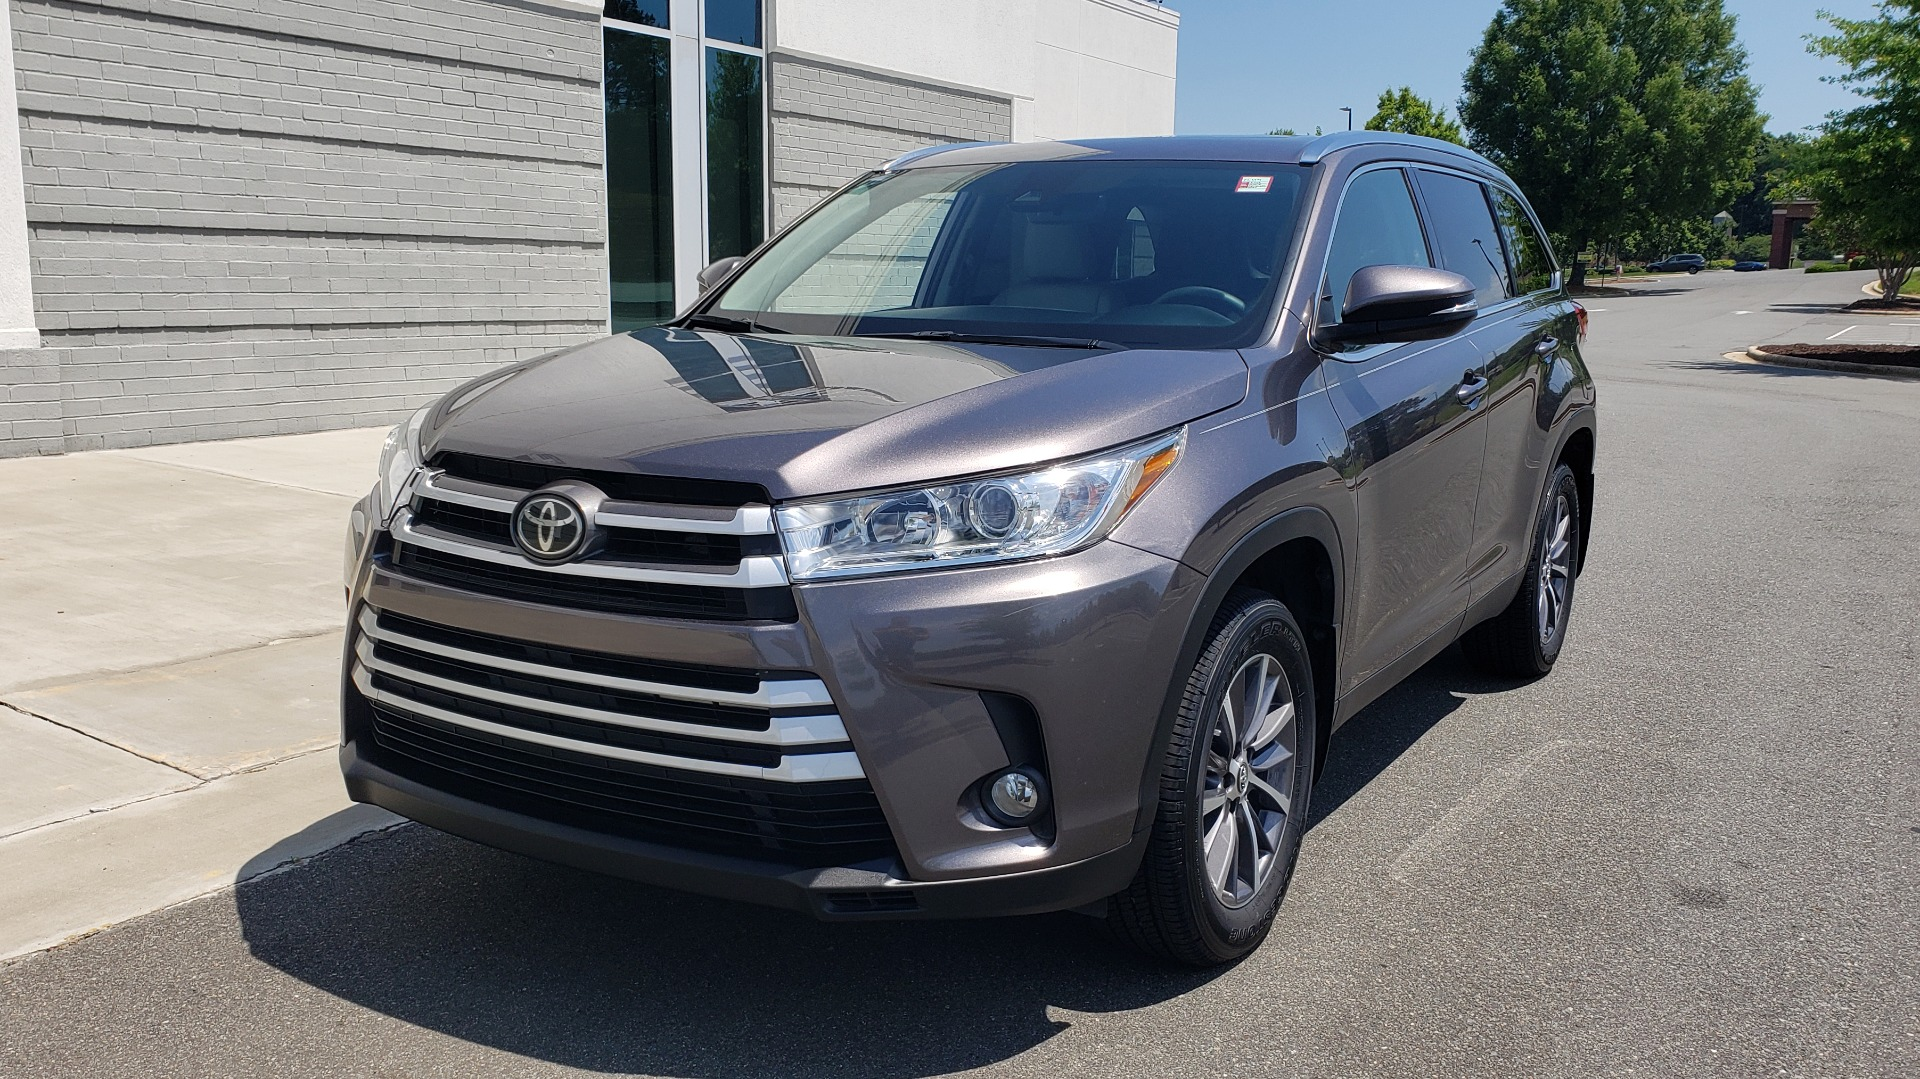 Used 2019 Toyota HIGHLANDER XLE / 3.5L V6 / AWD / LEATHER / 8-SPD AUTO / 1-OWNER for sale $37,500 at Formula Imports in Charlotte NC 28227 3